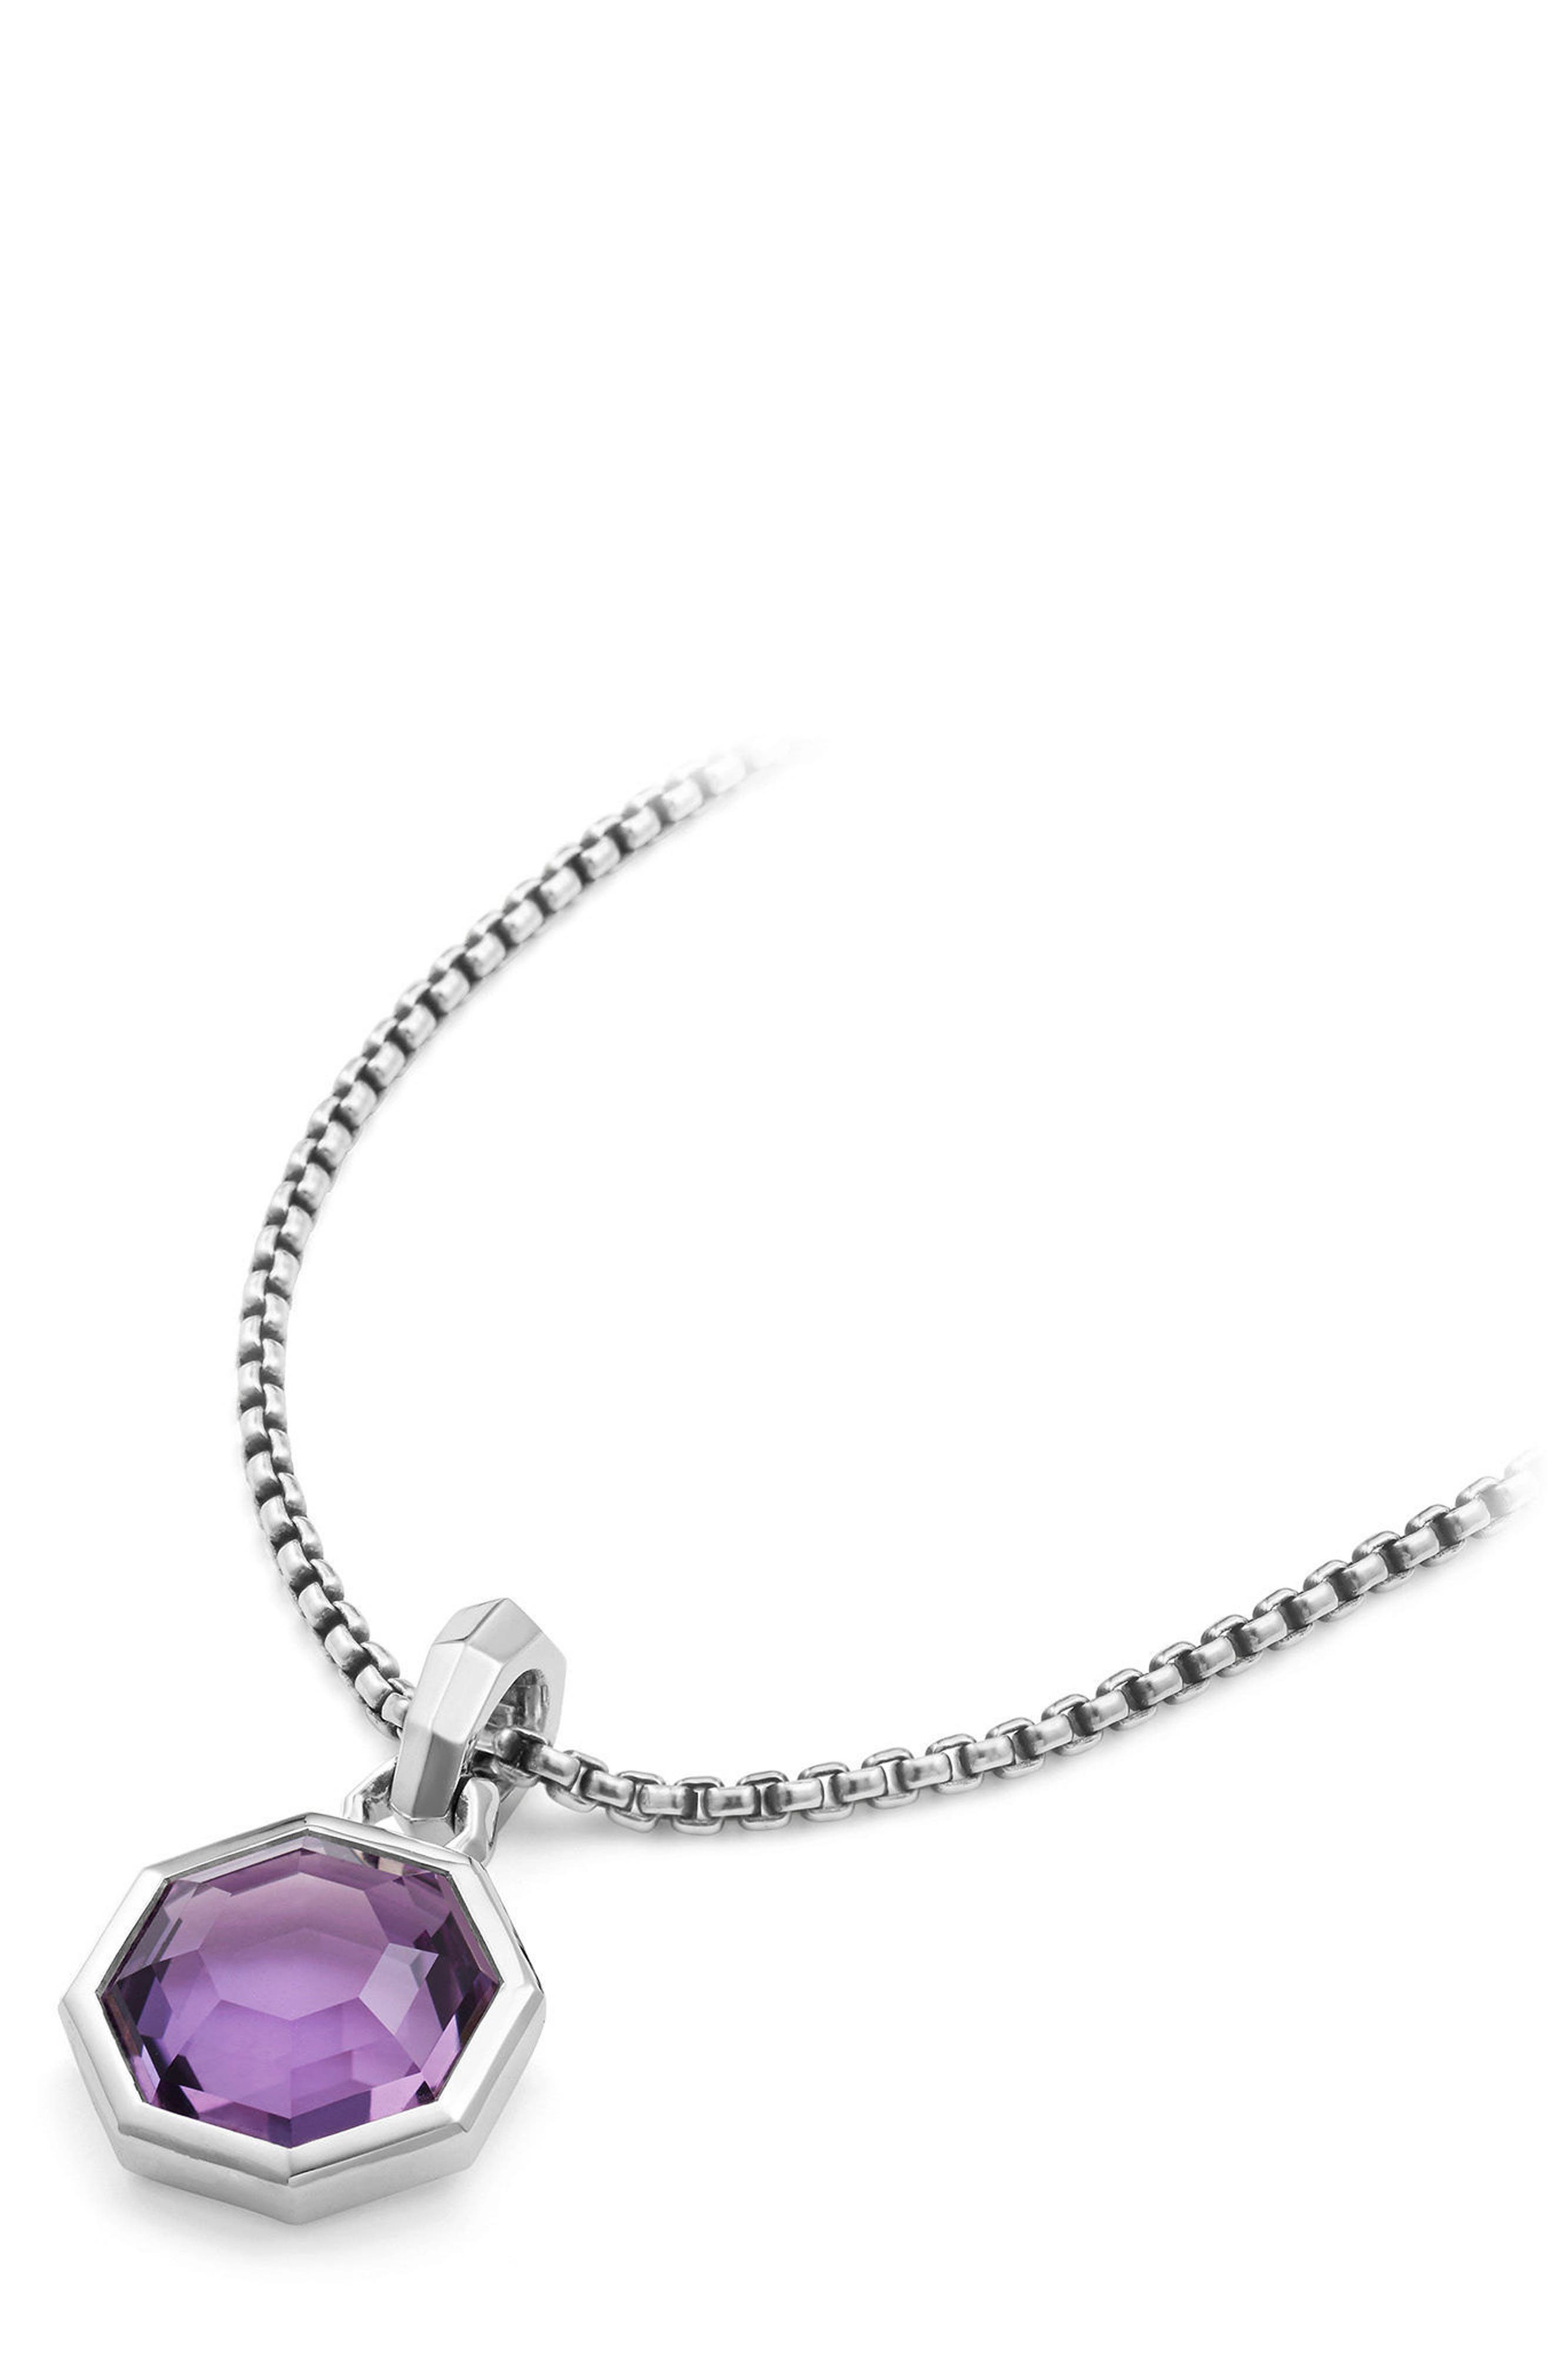 Cable Collectibles Octagon Cut Semiprecious Stone Amulet,                             Alternate thumbnail 3, color,                             AMETHYST